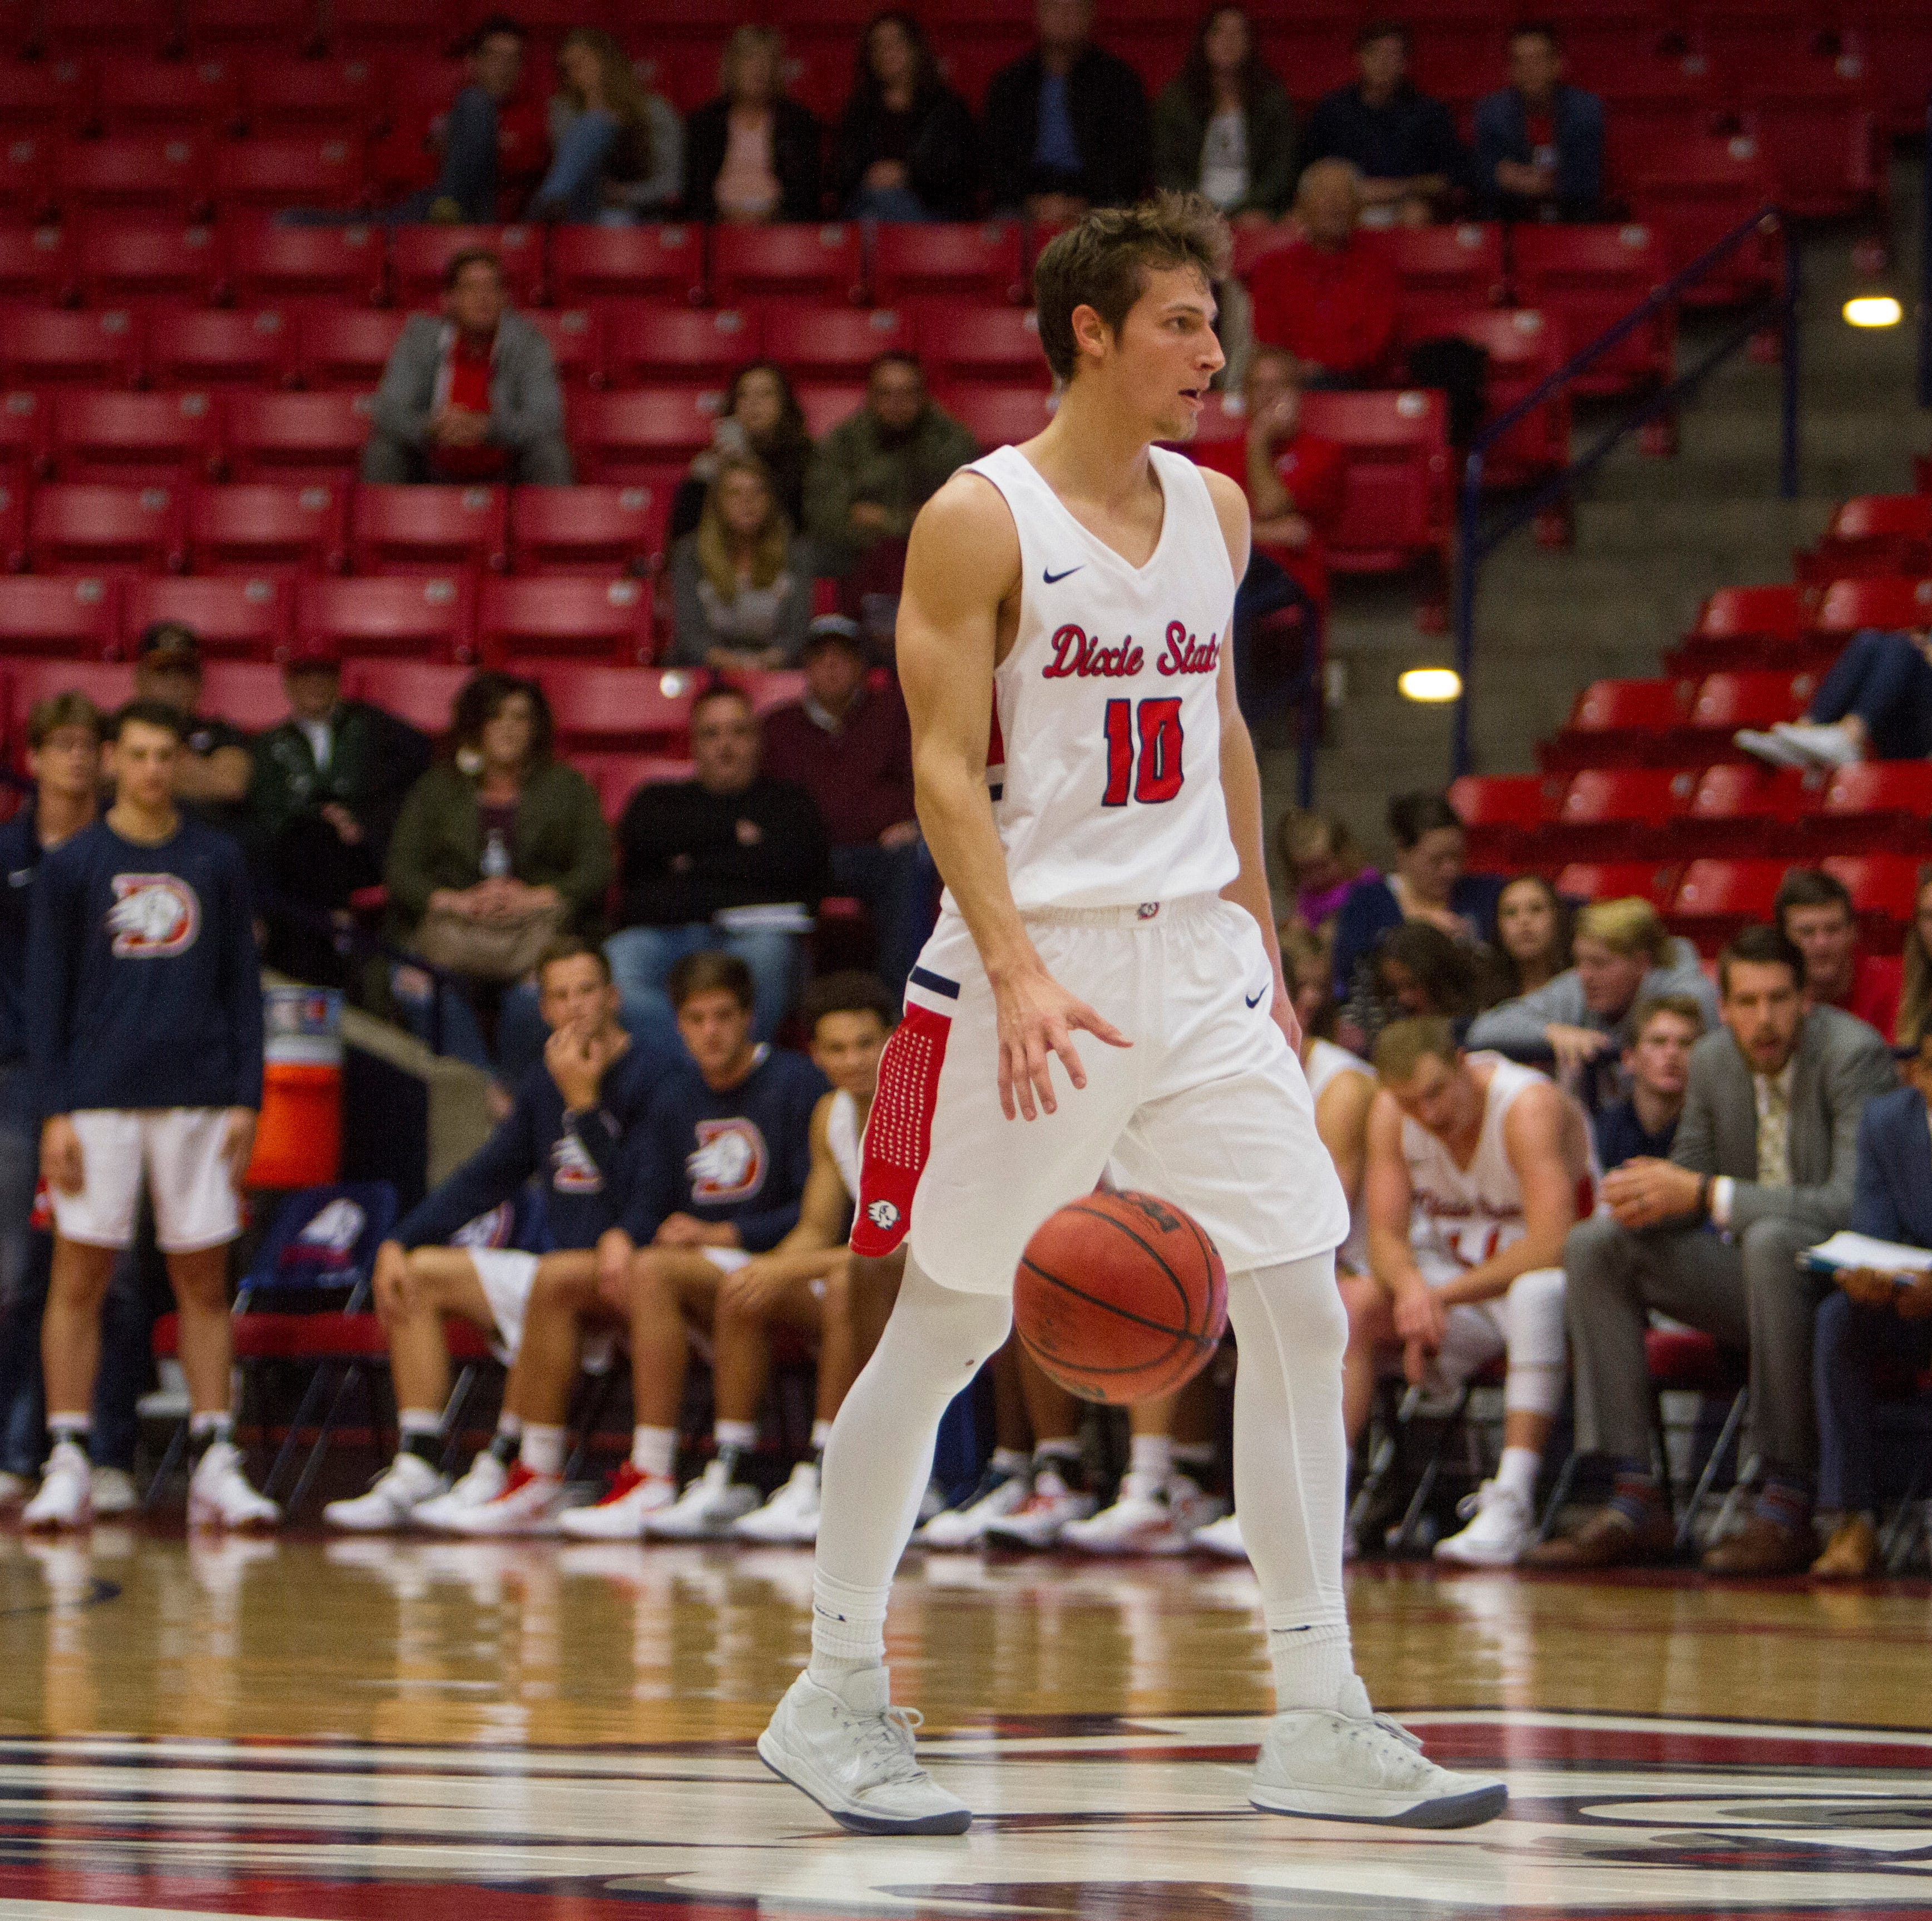 Dixie State falls short in comeback attempt, loses in first round of RMAC tourney